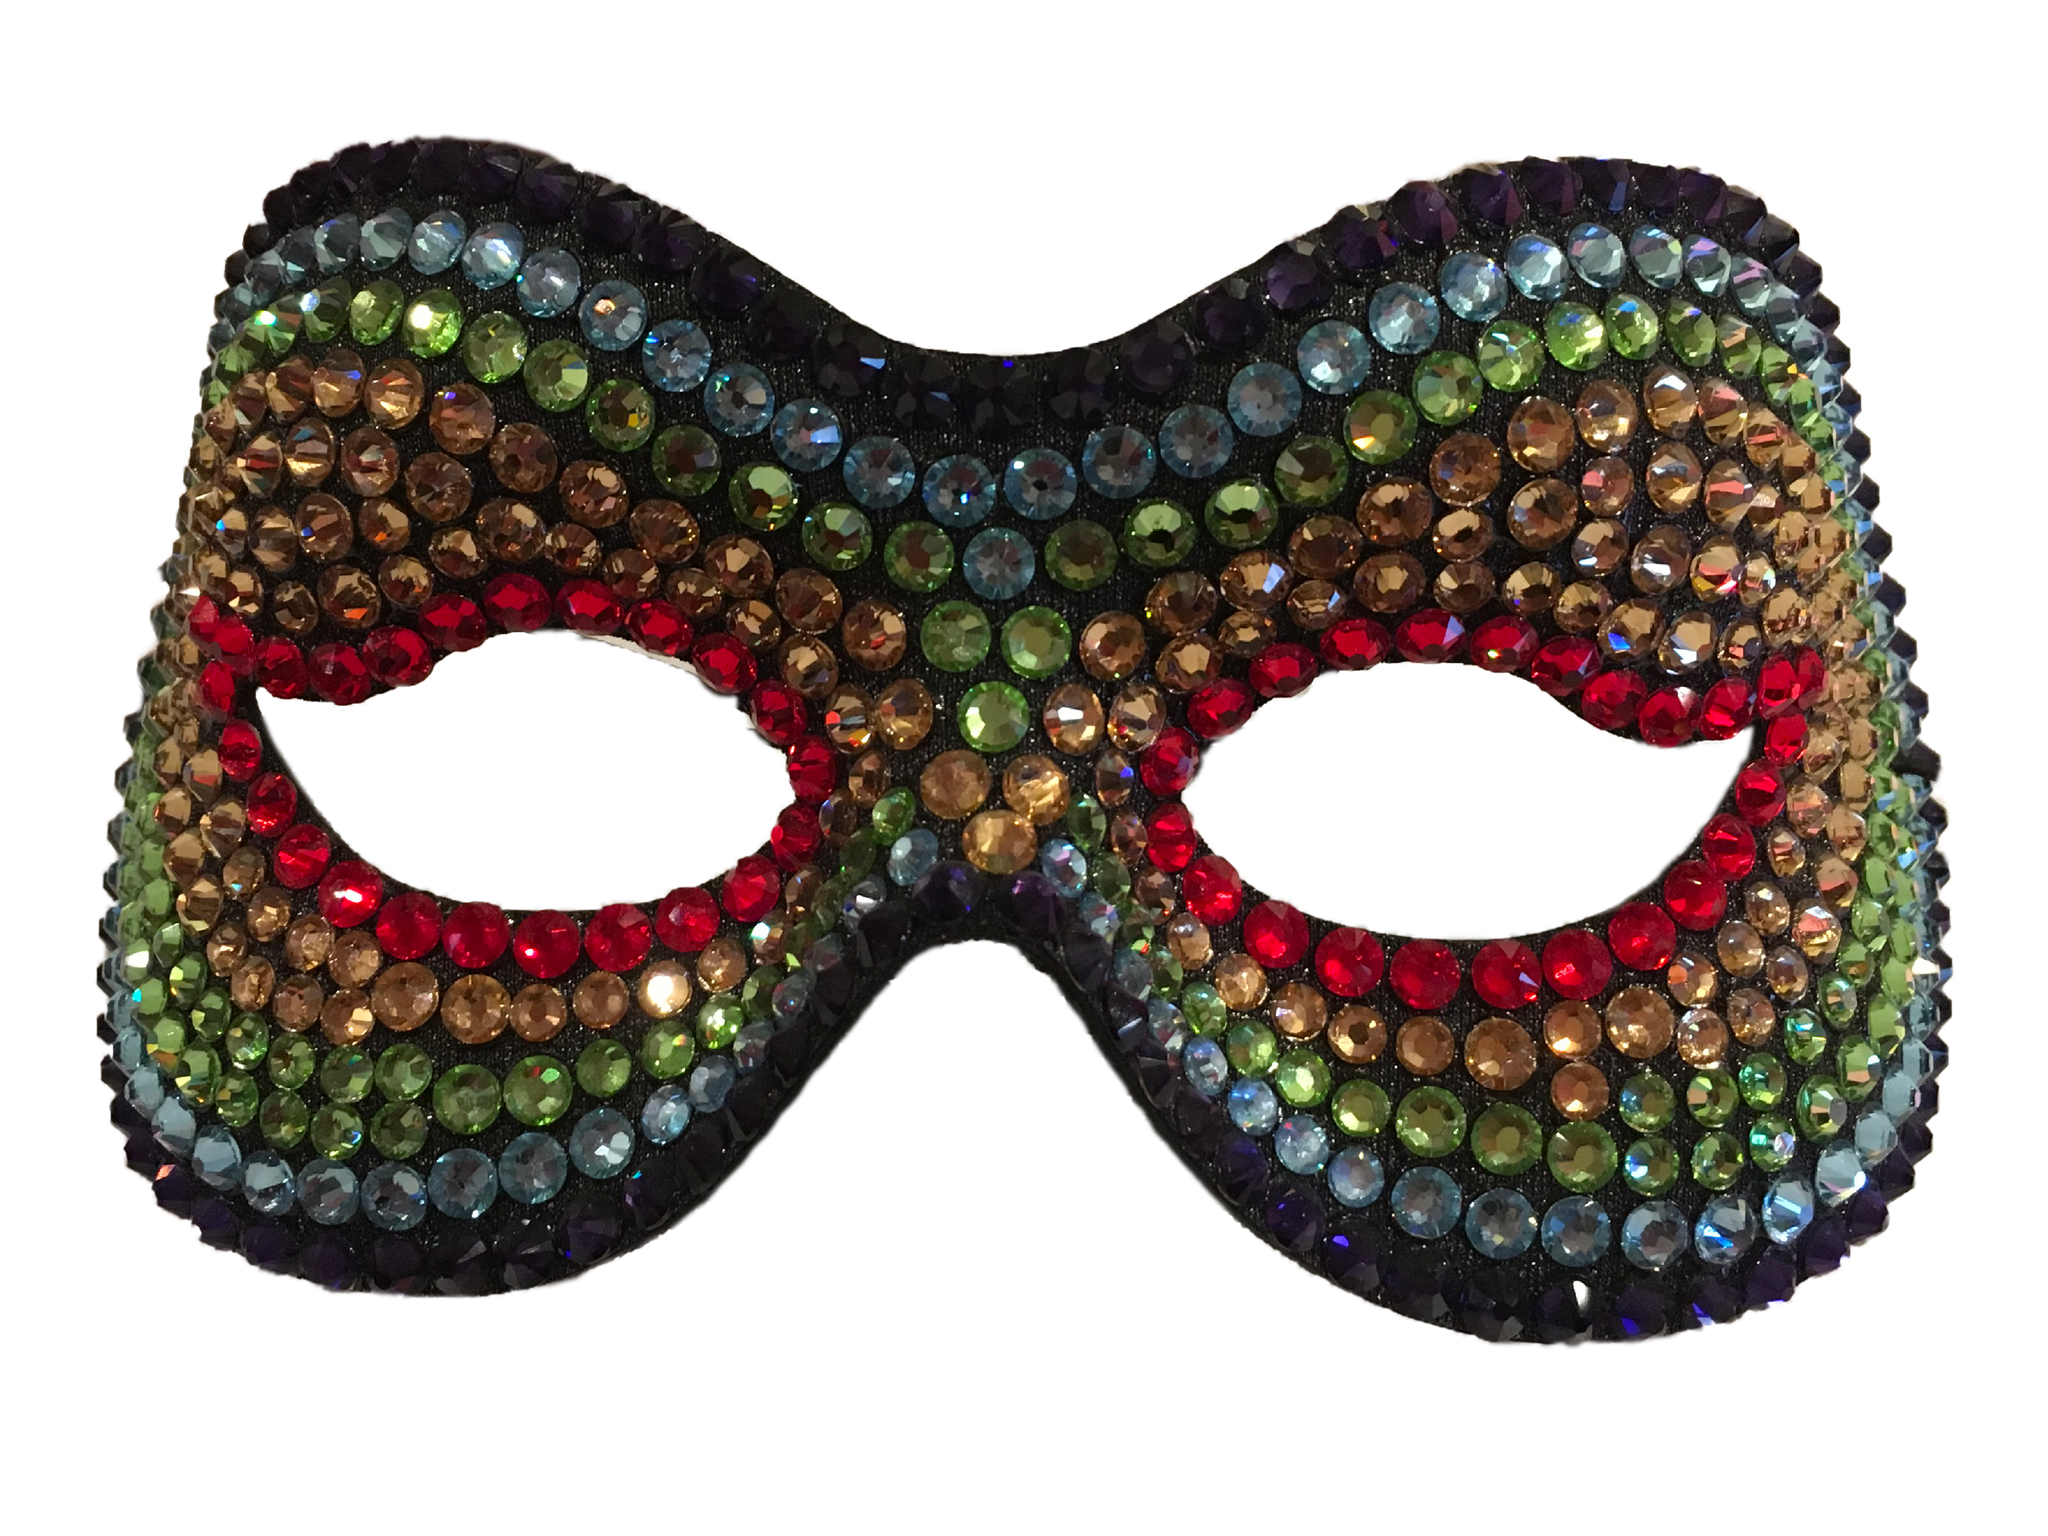 Rainbow Swarovoski Crystal Mask